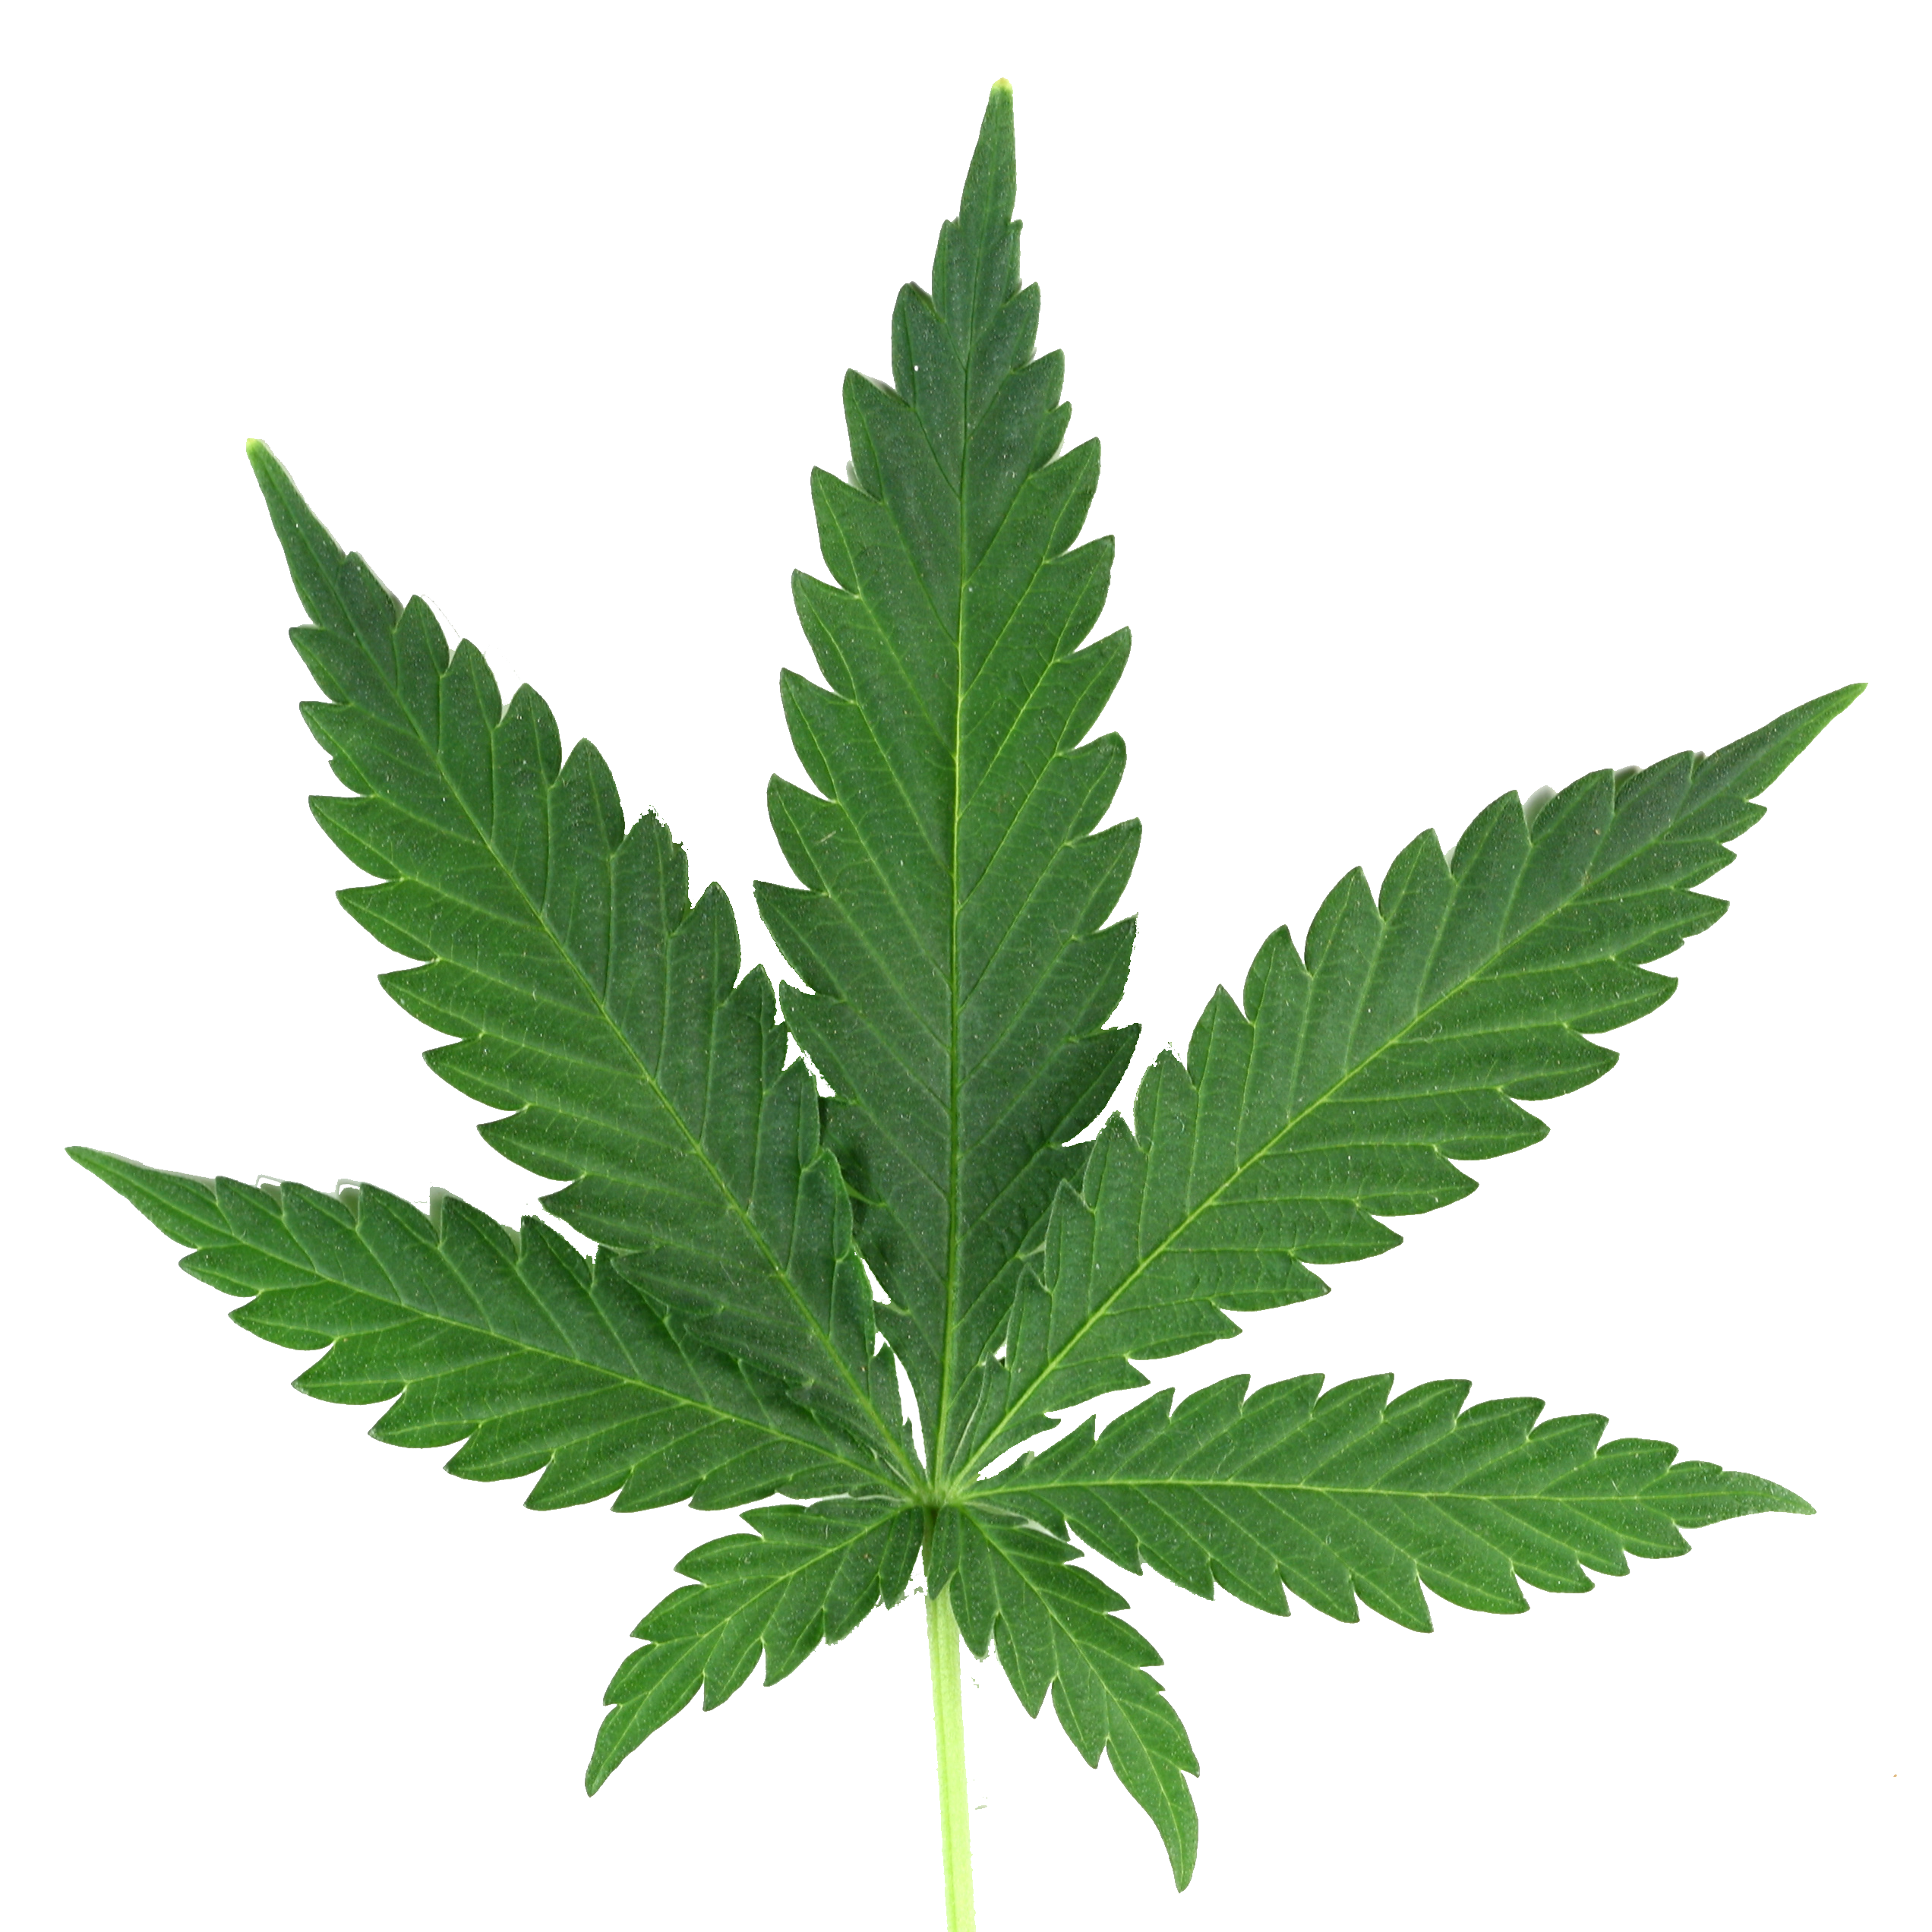 Marijuana clipart transparent. Leaf png real